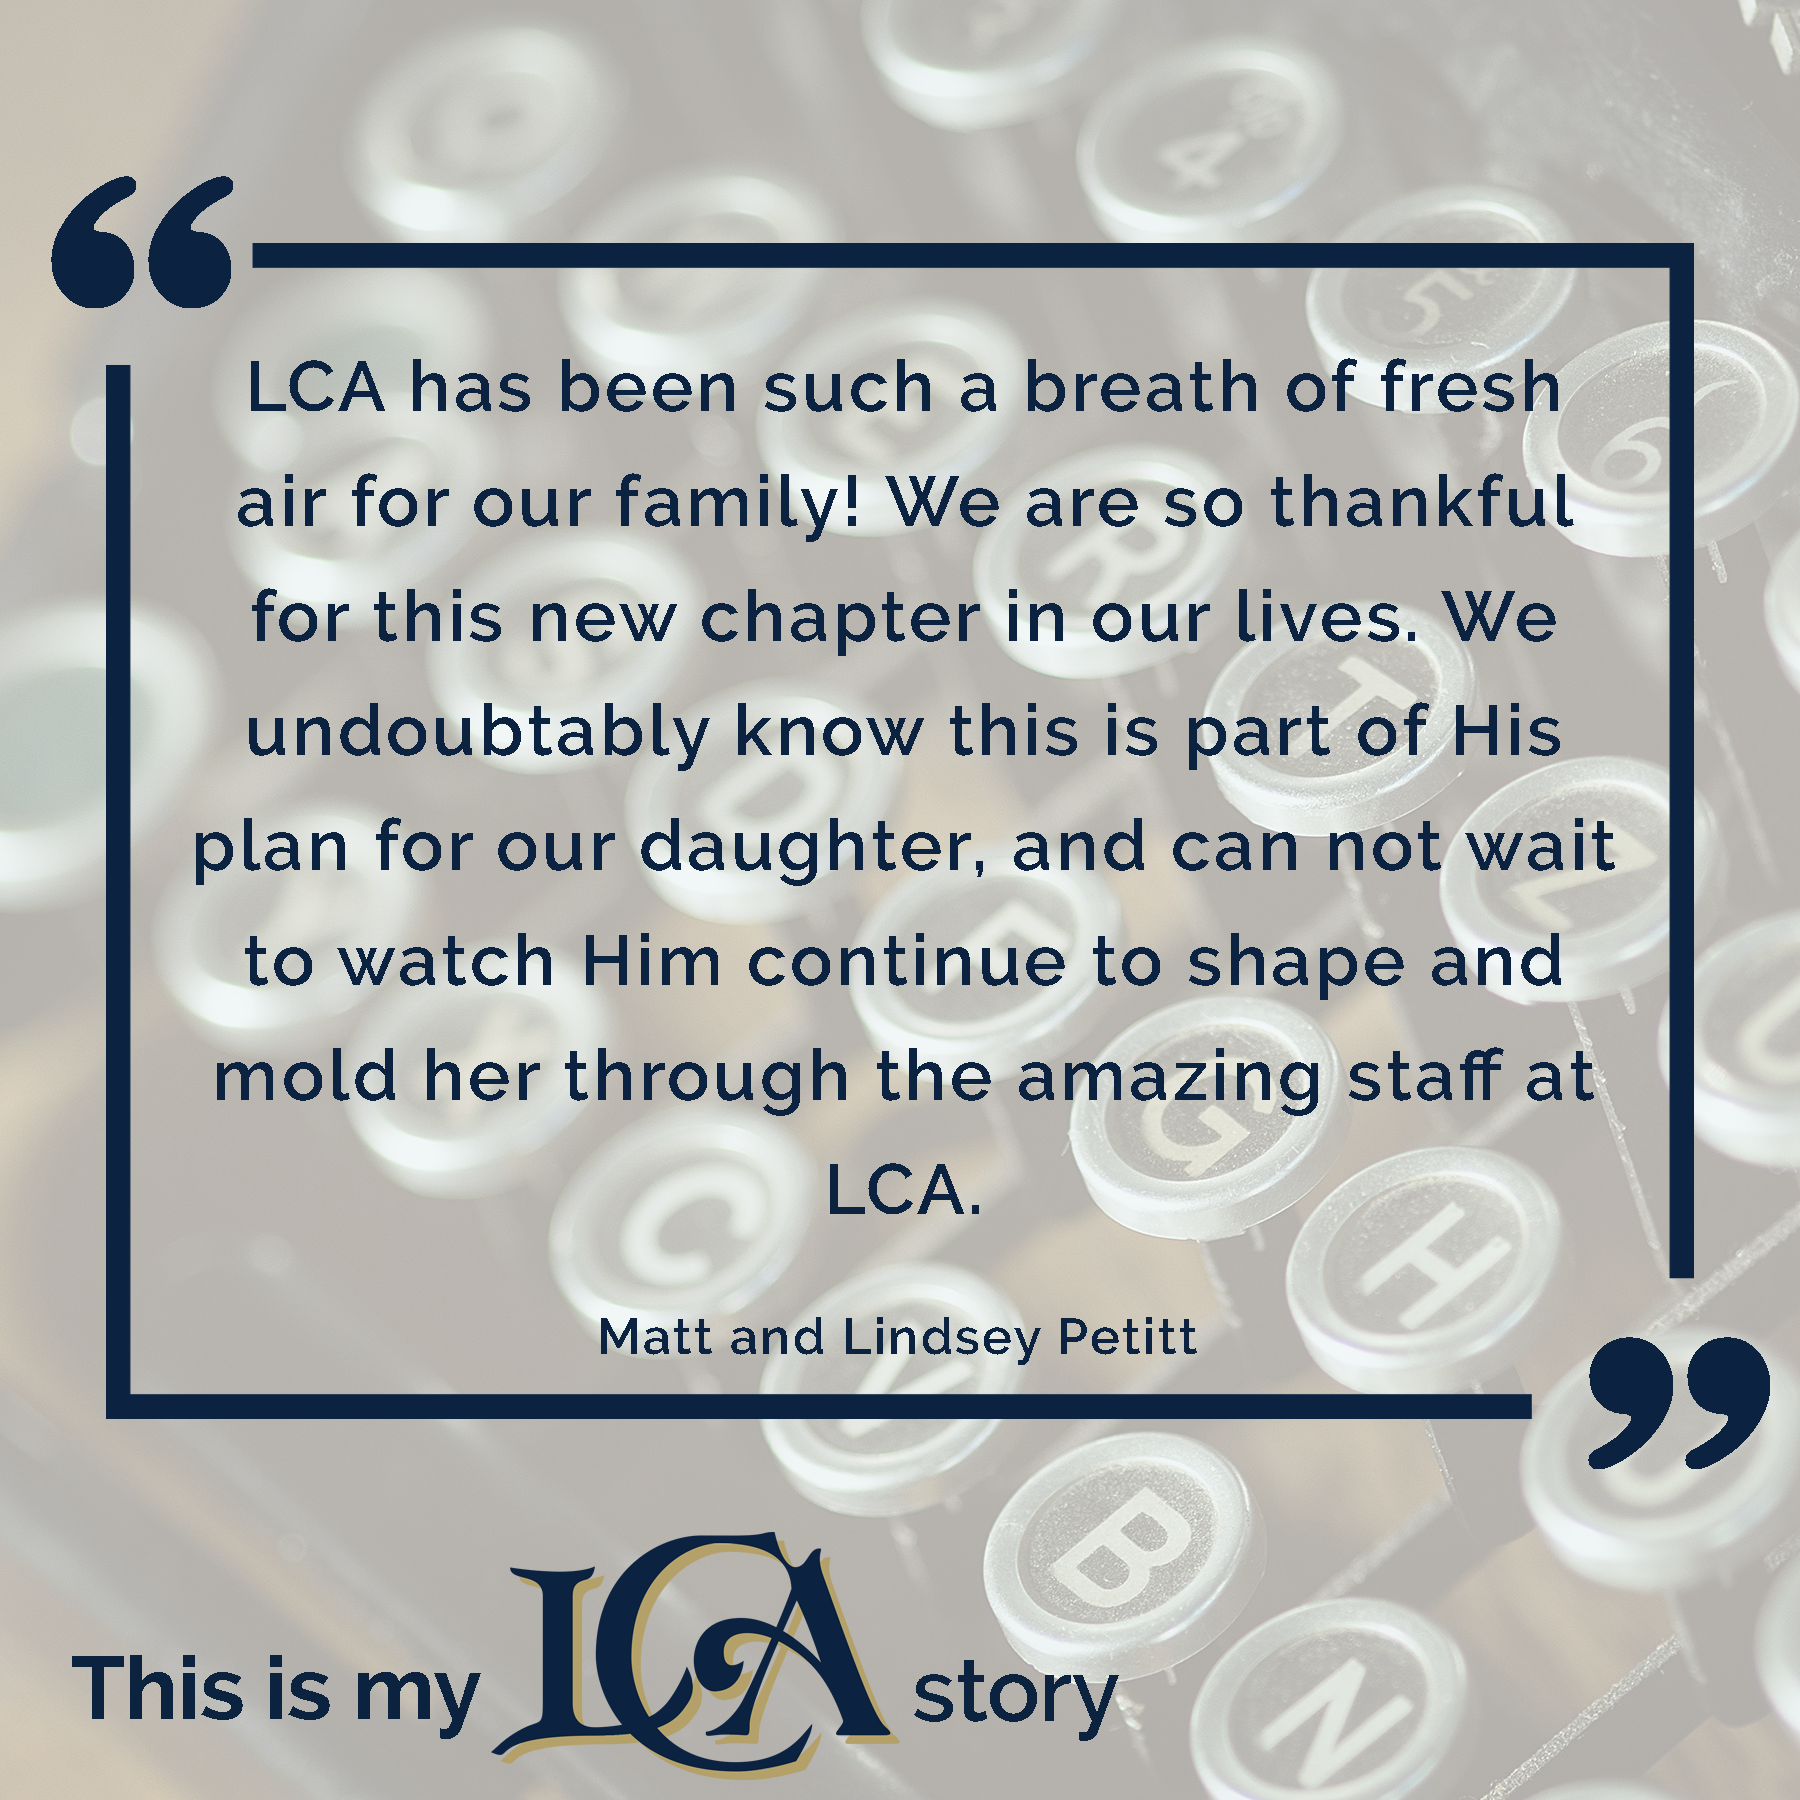 Click the image for Matt & Lindsey's Story